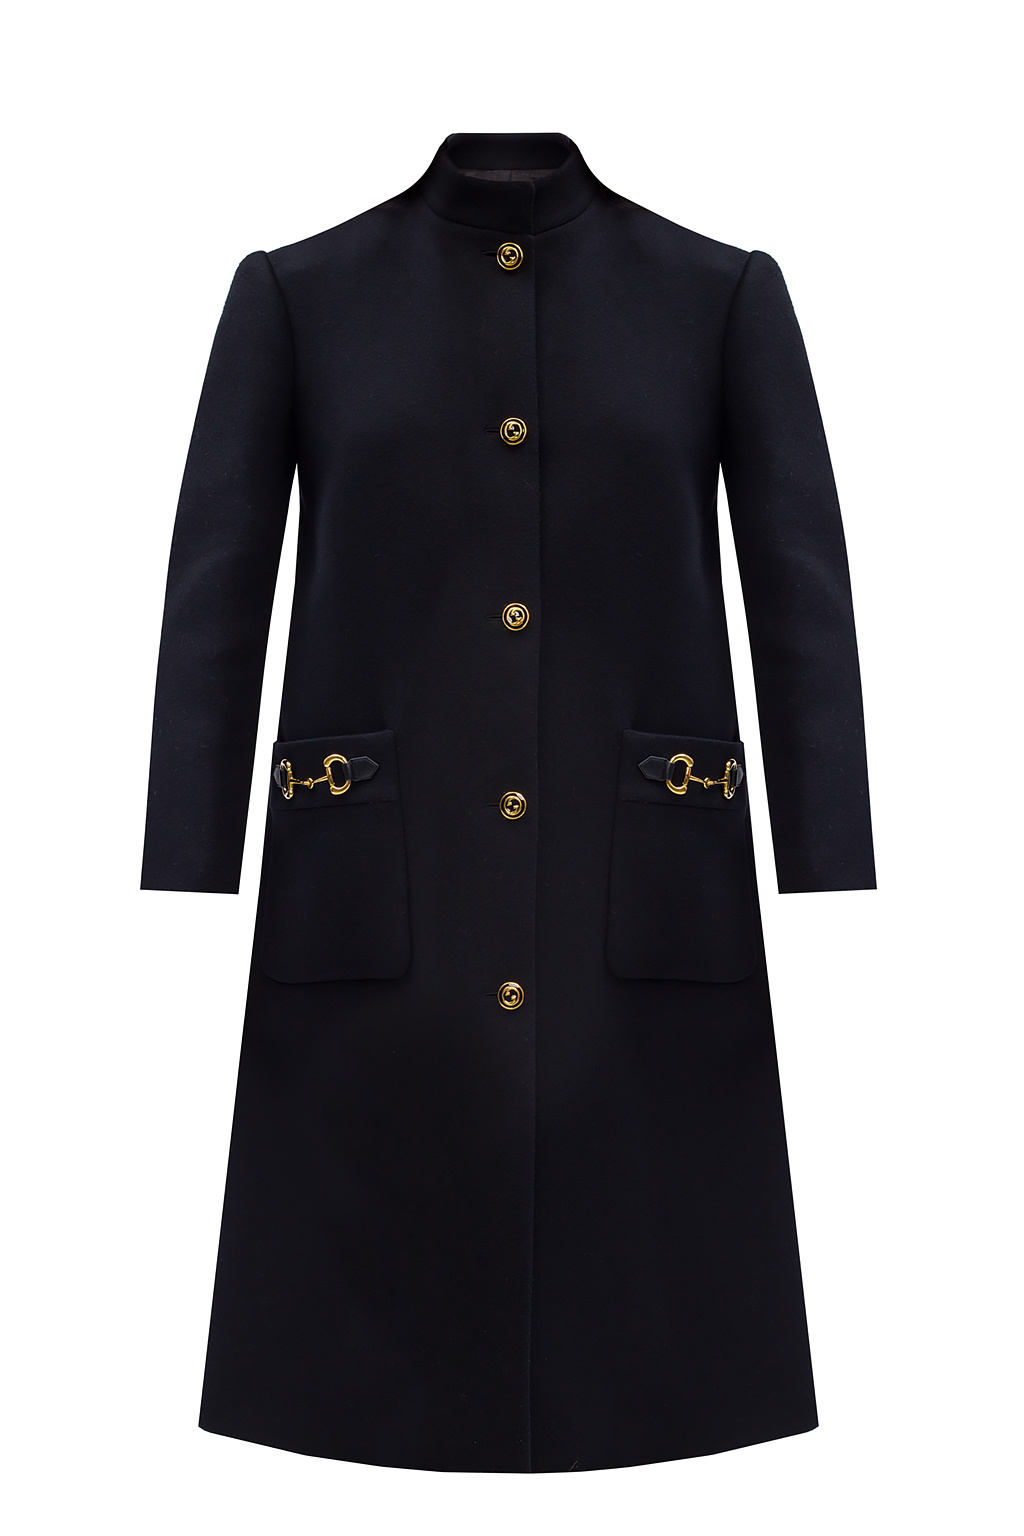 Gucci Coat with standup collar